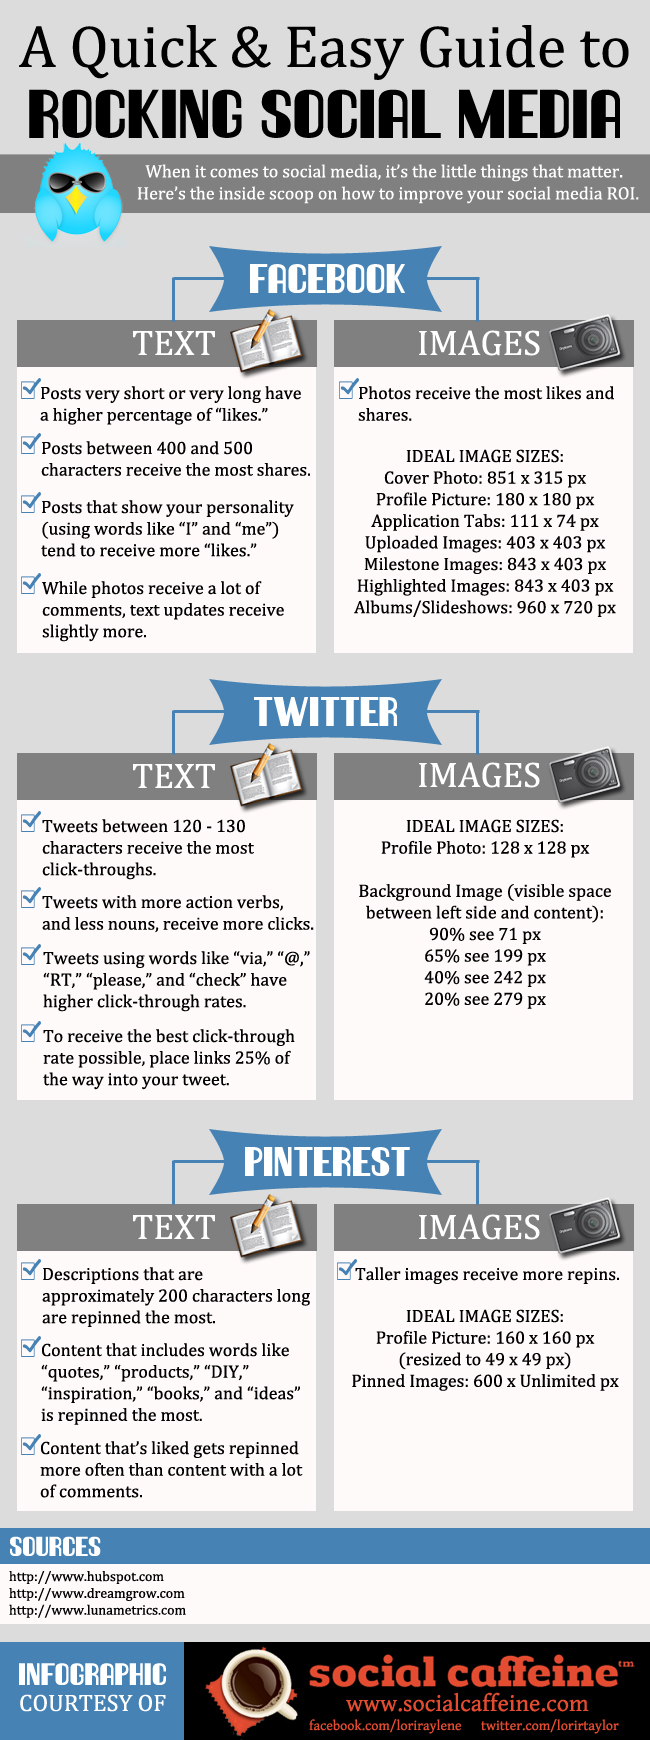 quick-and-easy-guide-to-rocking-social-media-infographic